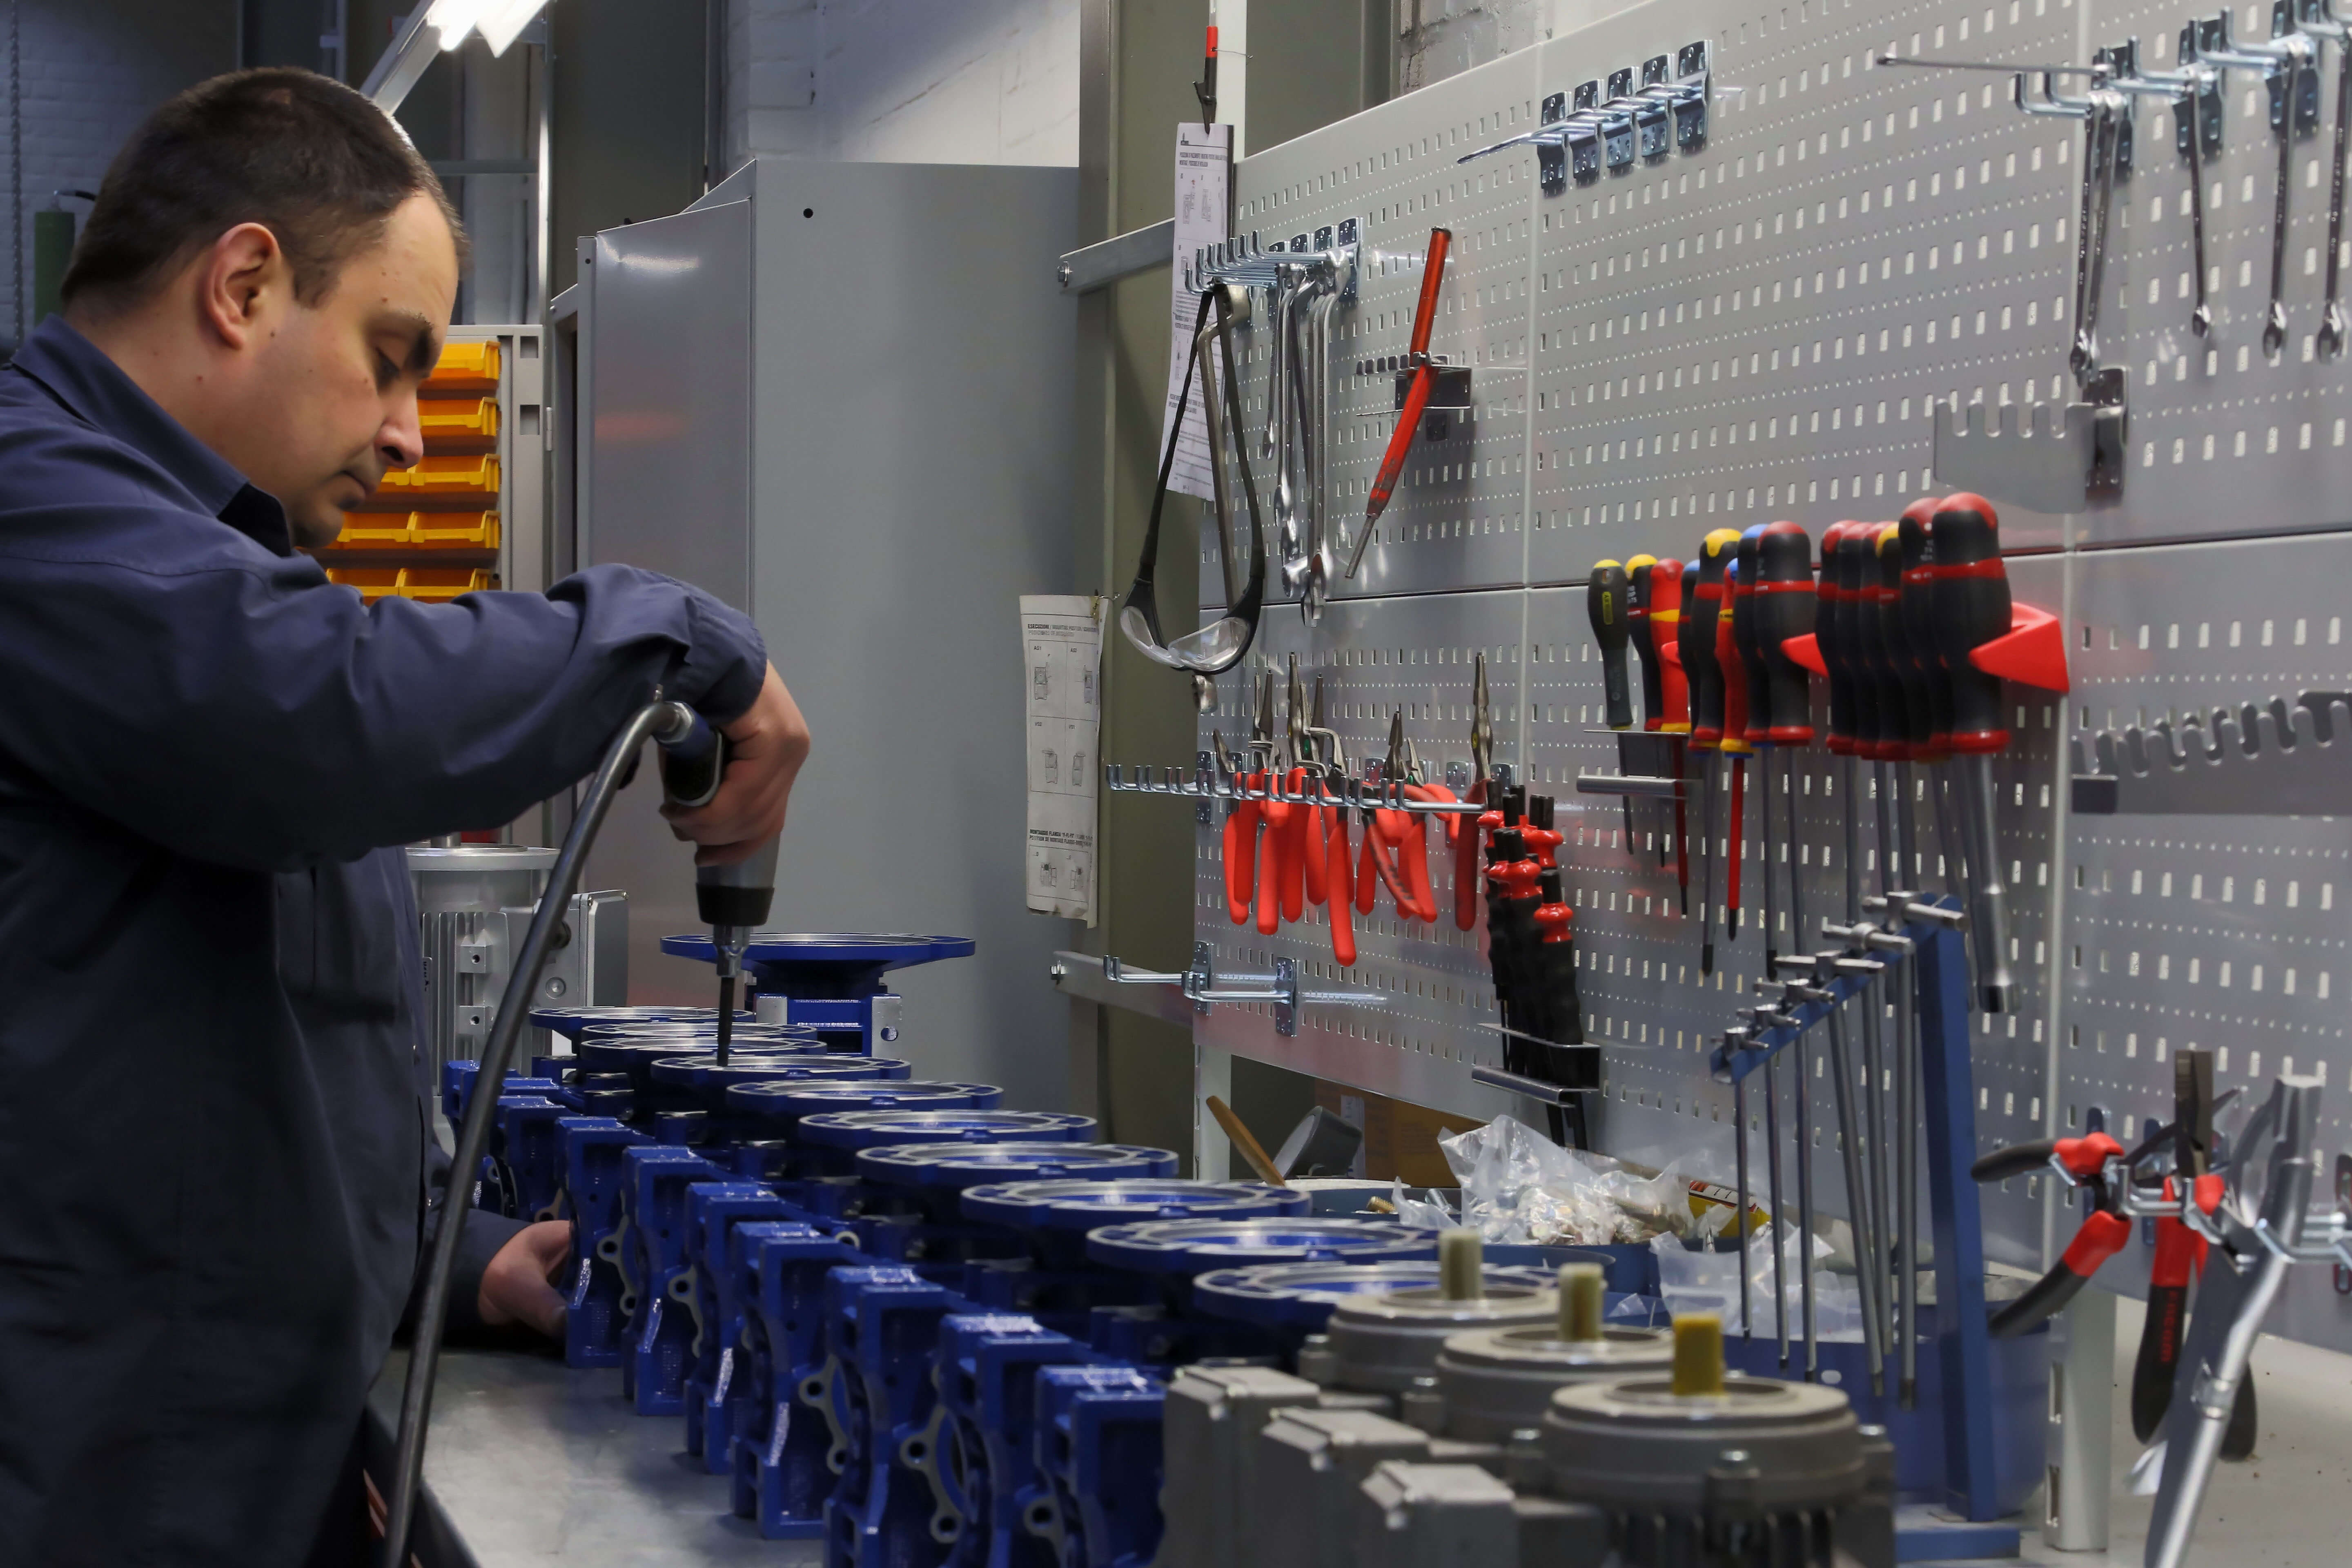 The largest gear motor assembly plant in Belgium